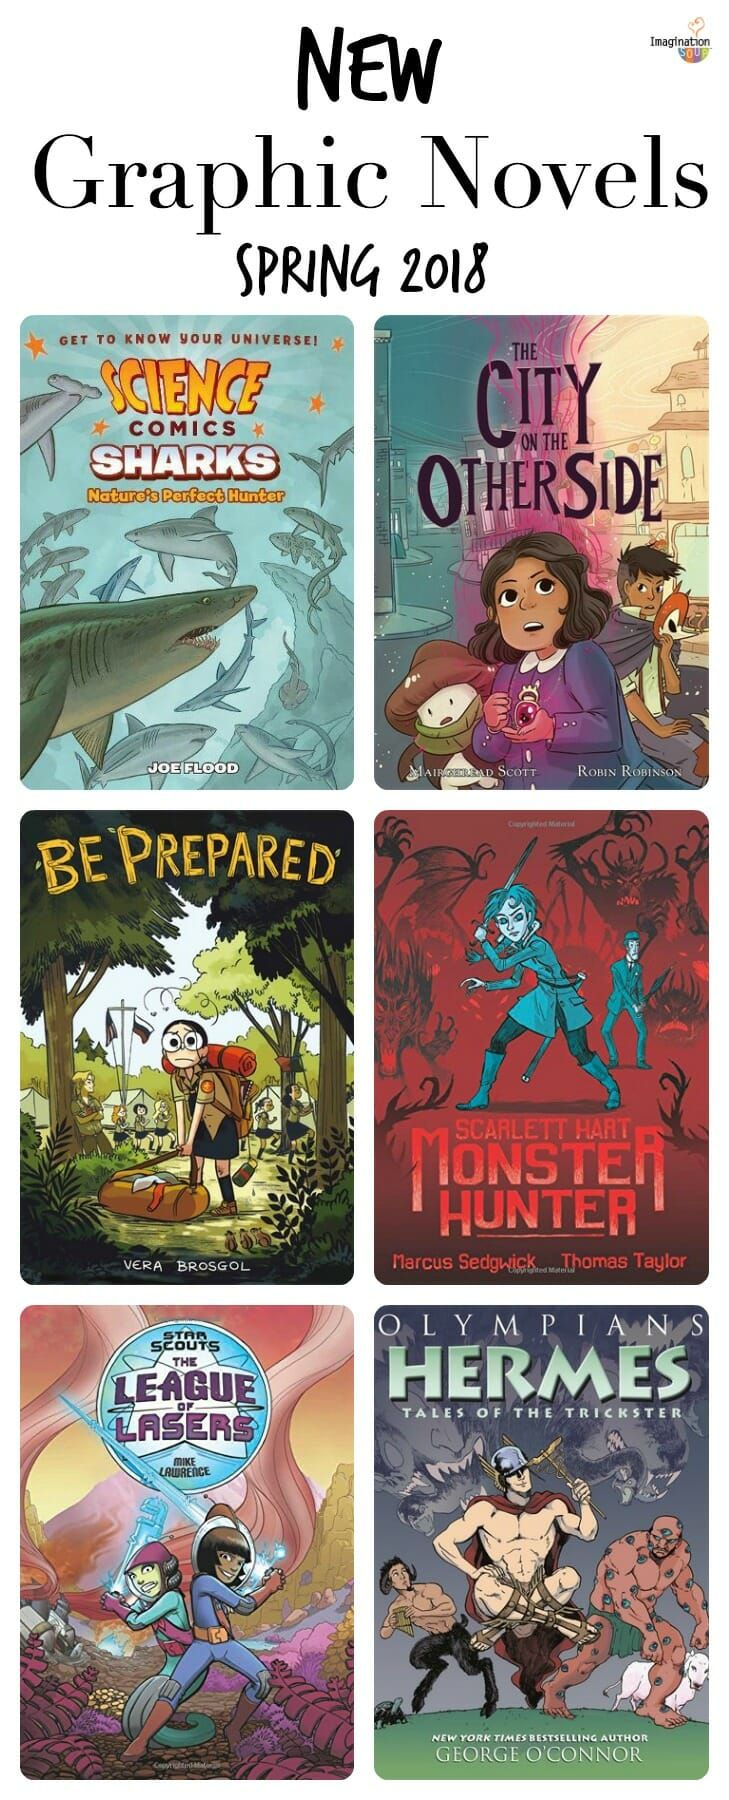 Latest Graphic Novels for Ages 8 - 12, Spring 2018